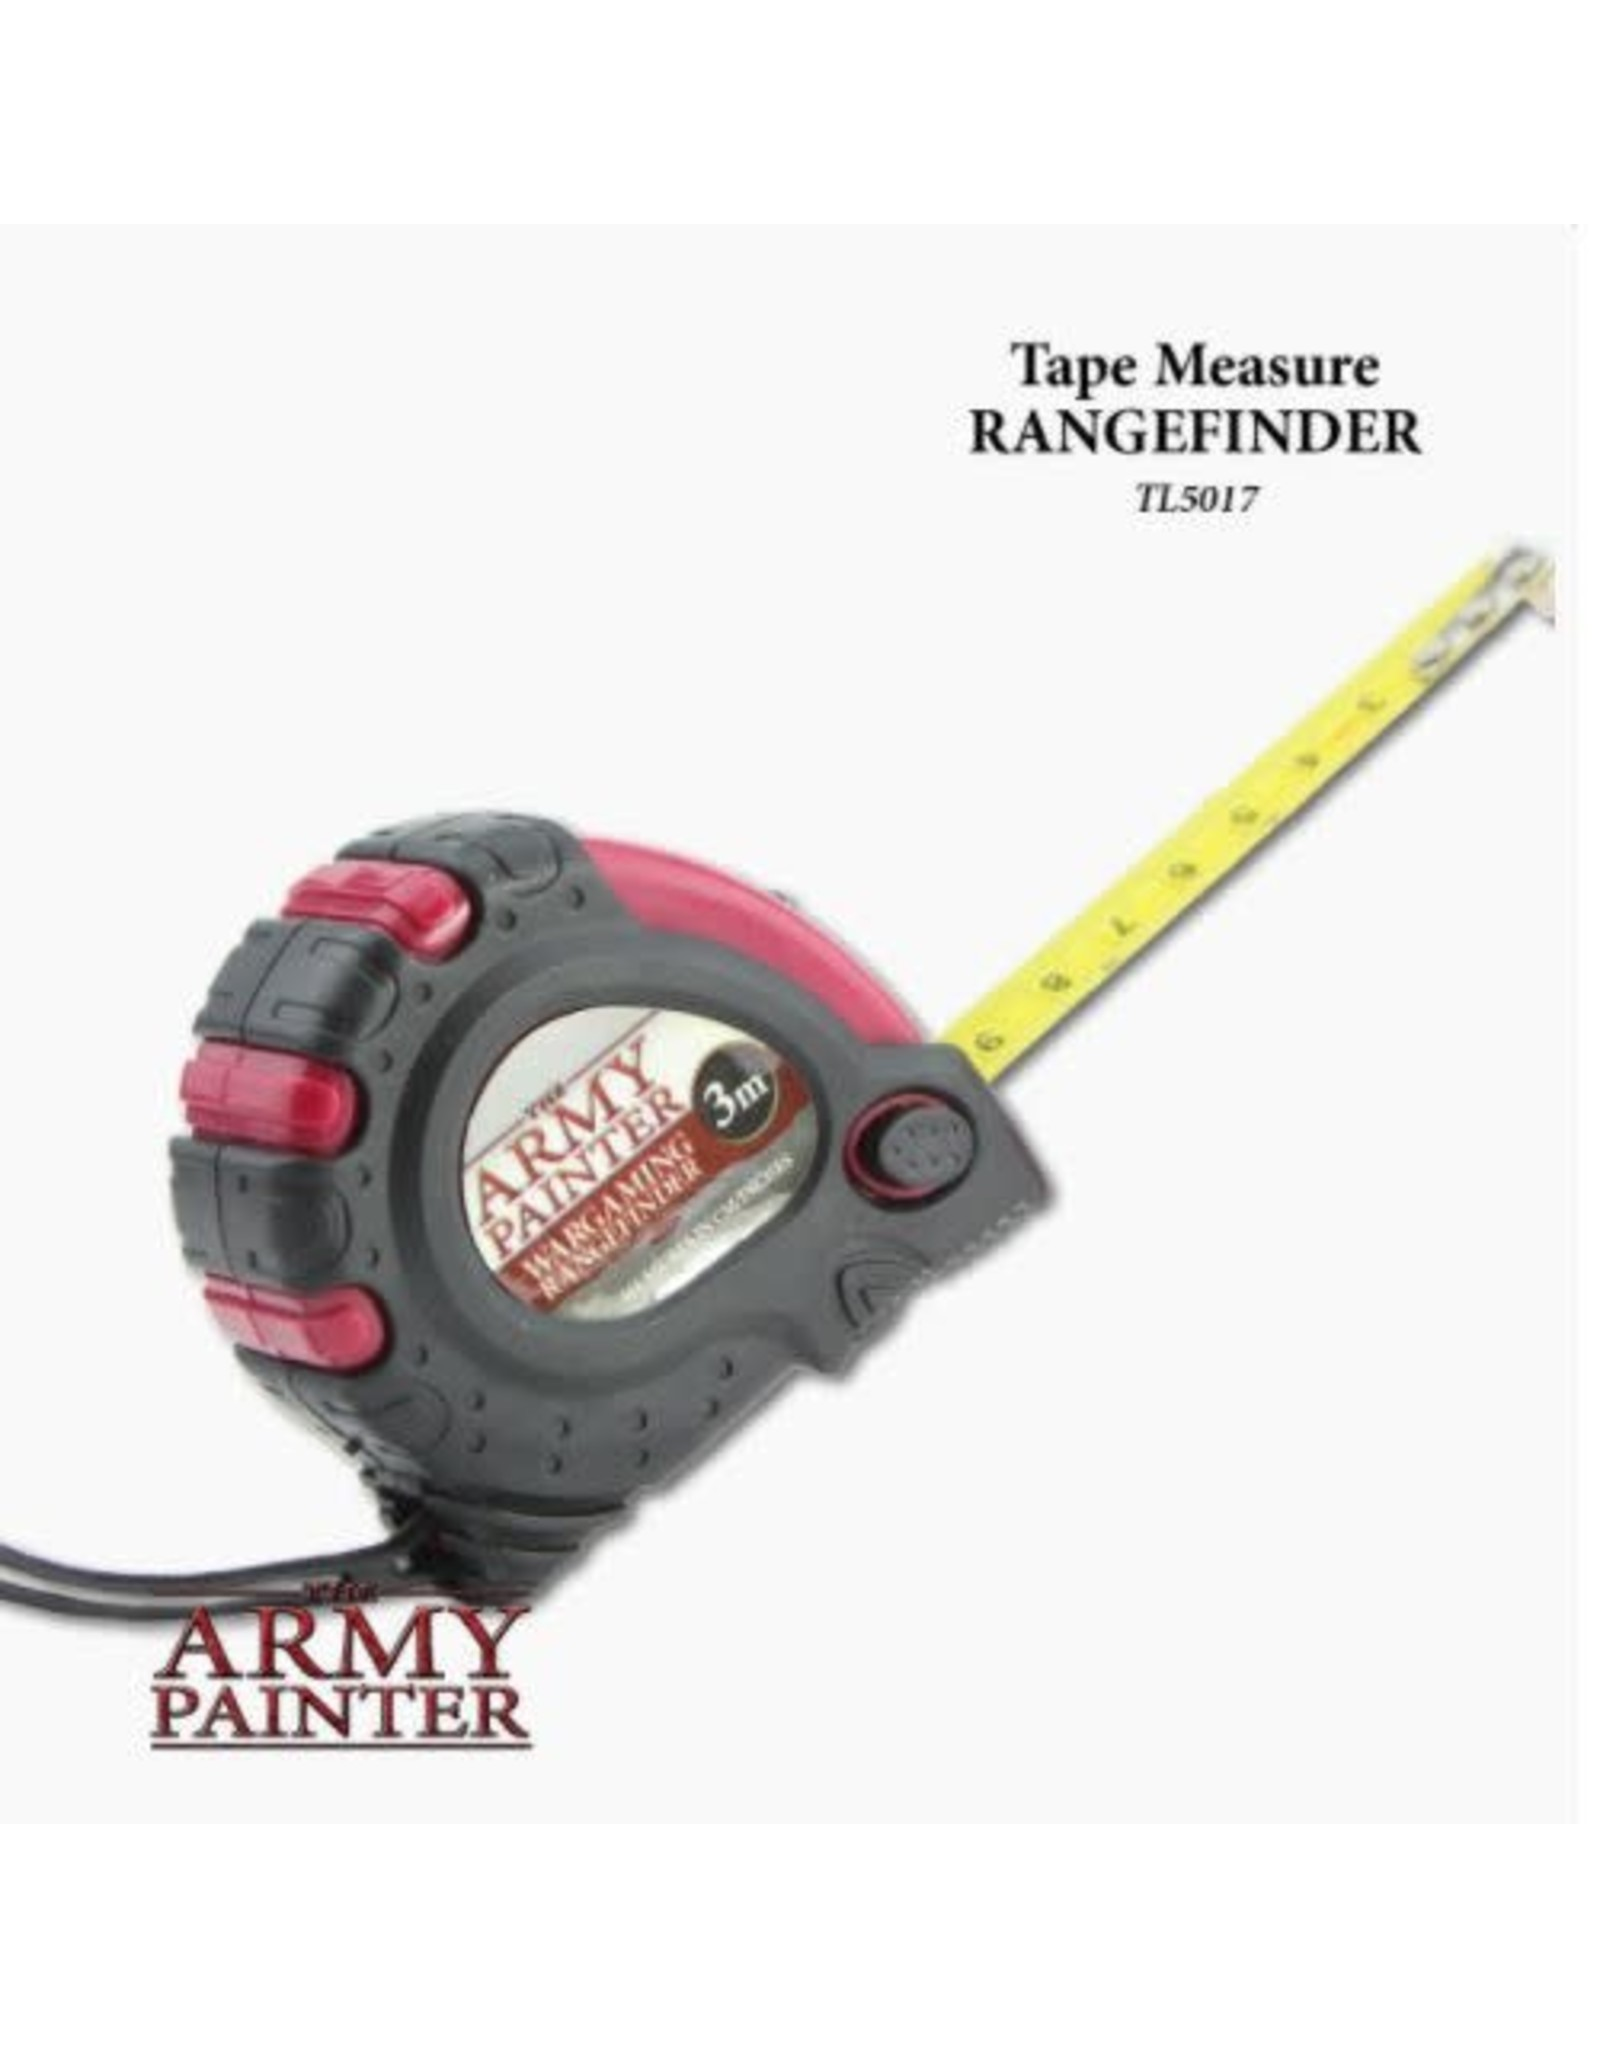 Army Painter Army Painter Tape Measure